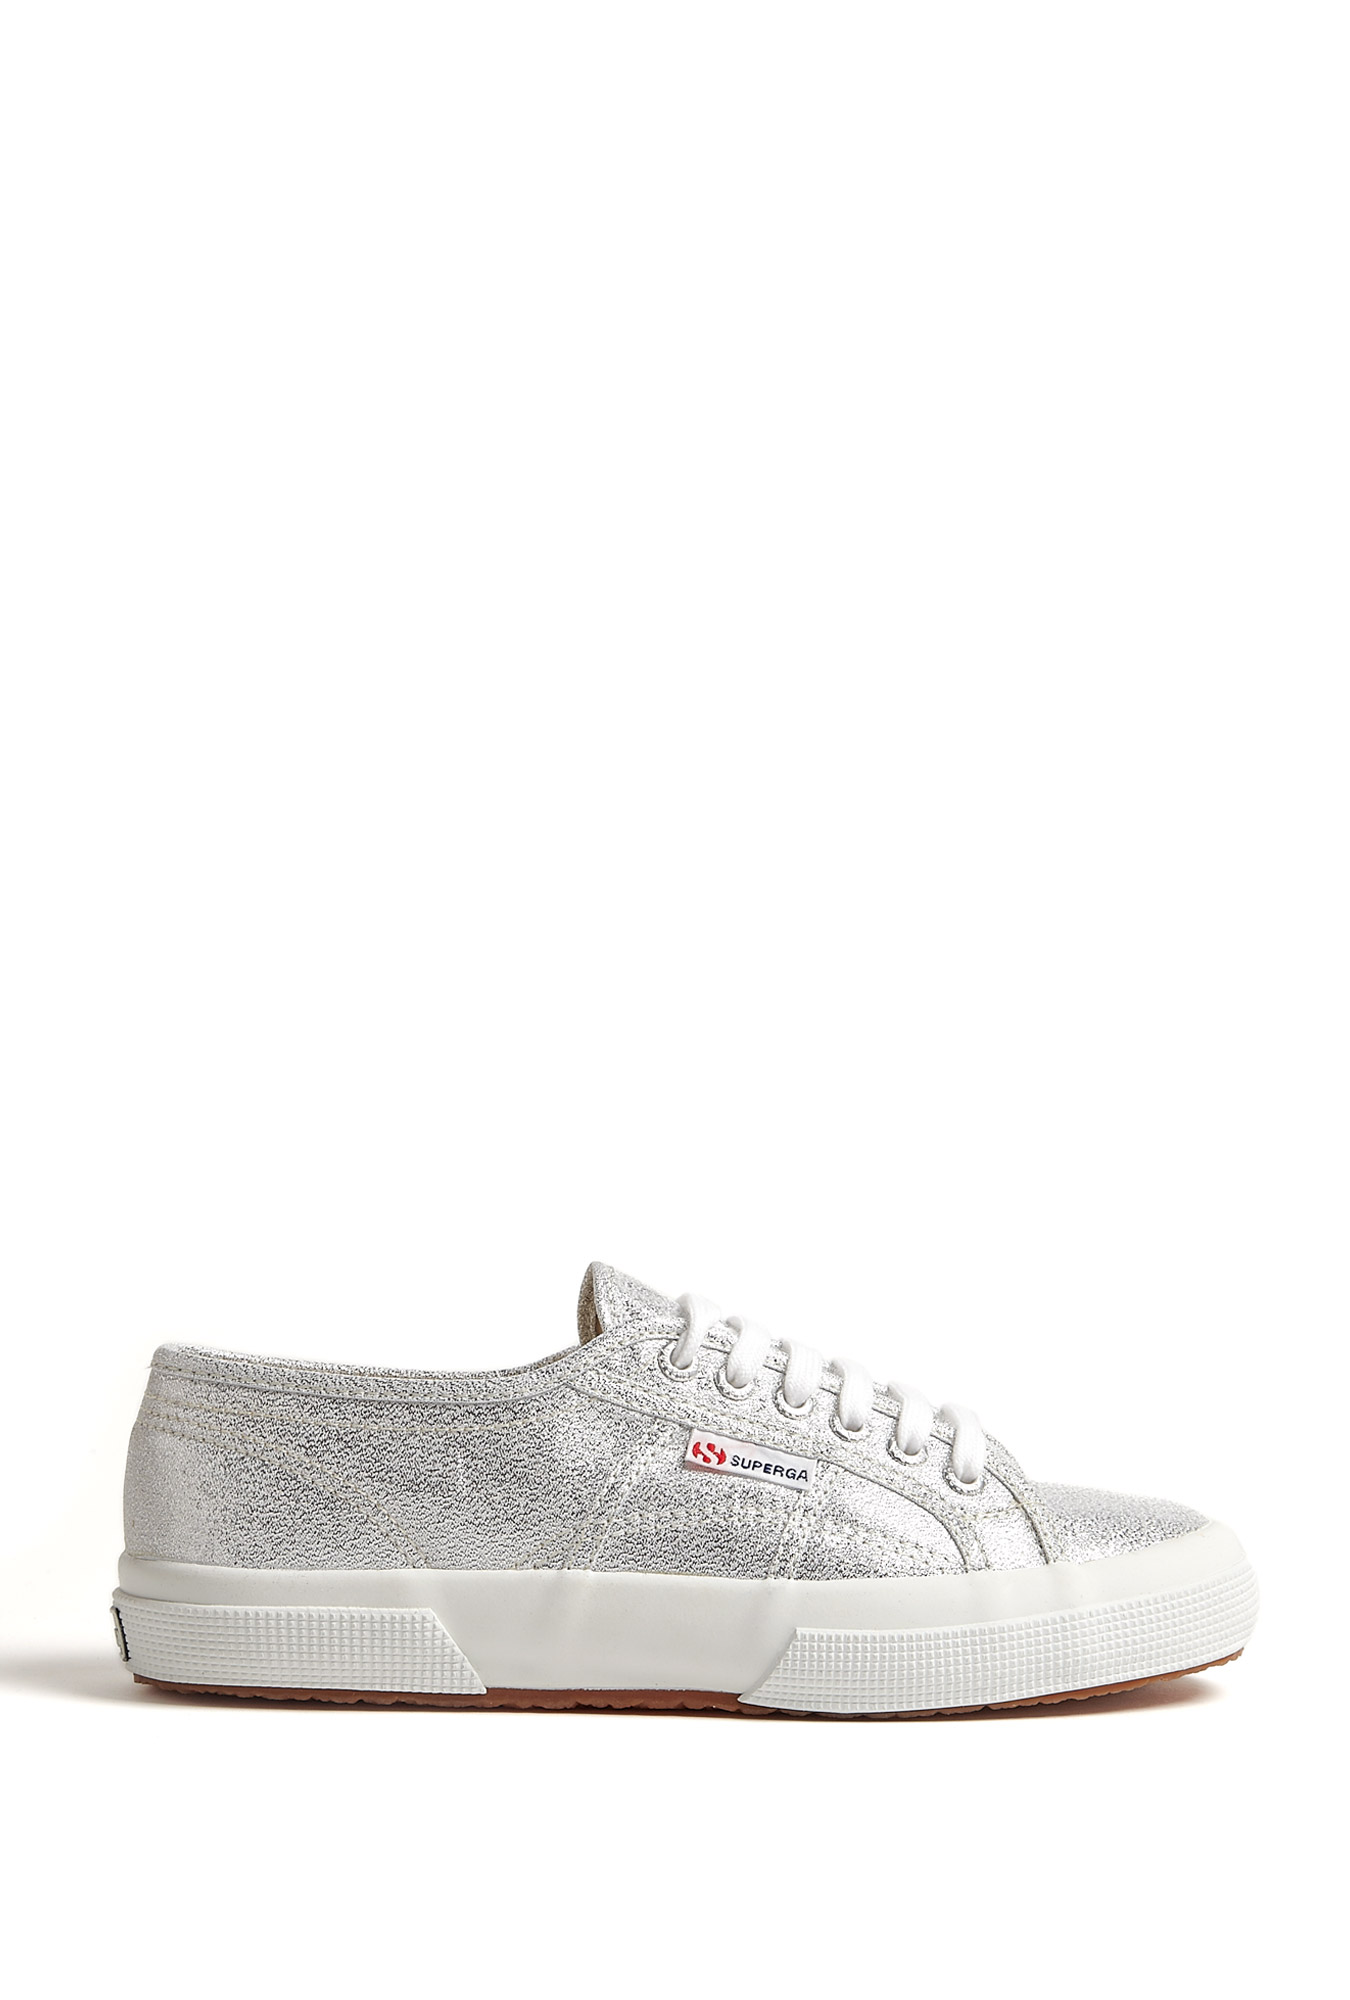 Silver metallic lace up pump by superga